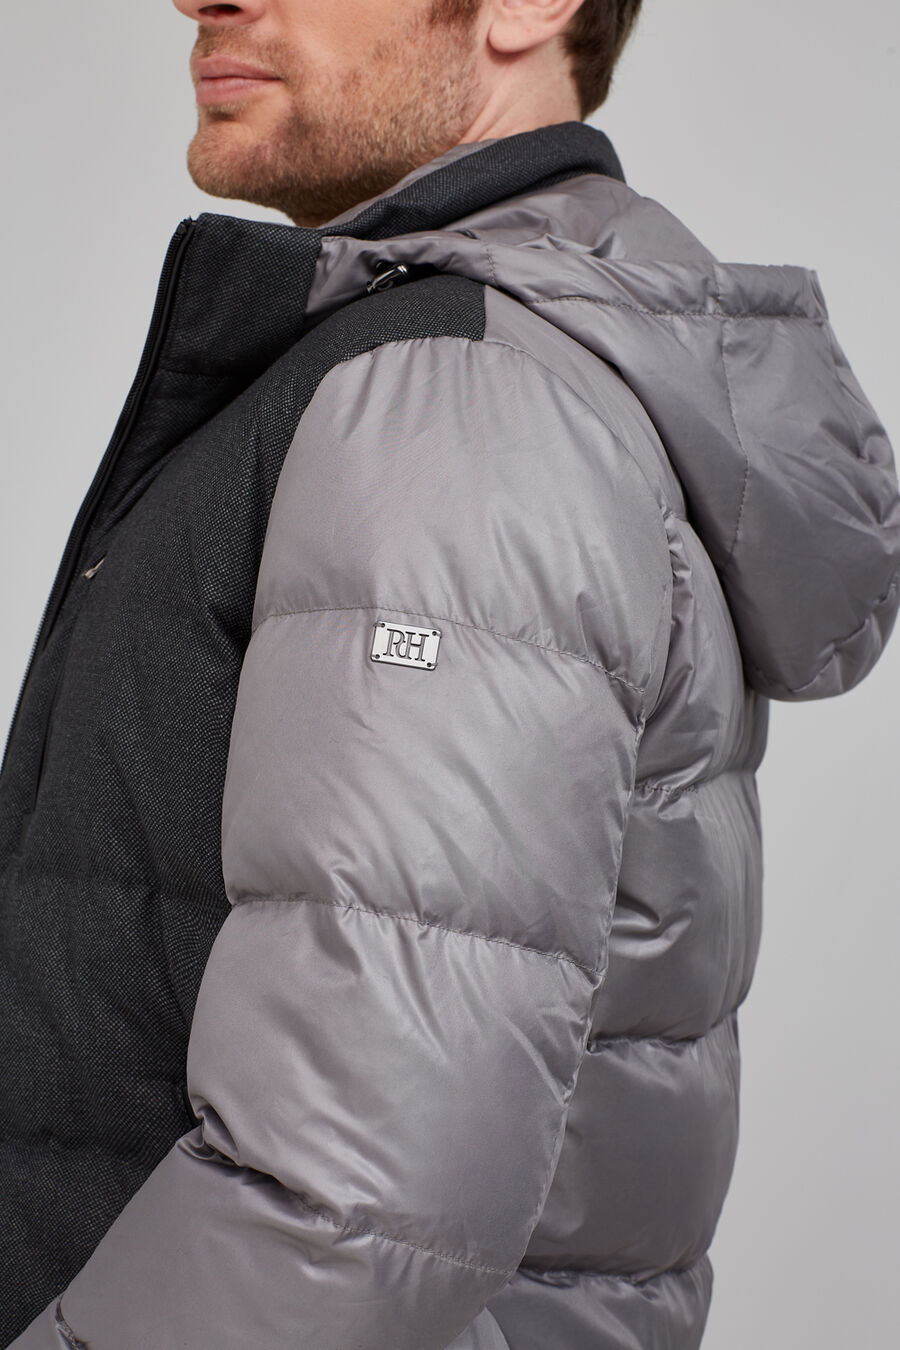 Combined down jacket